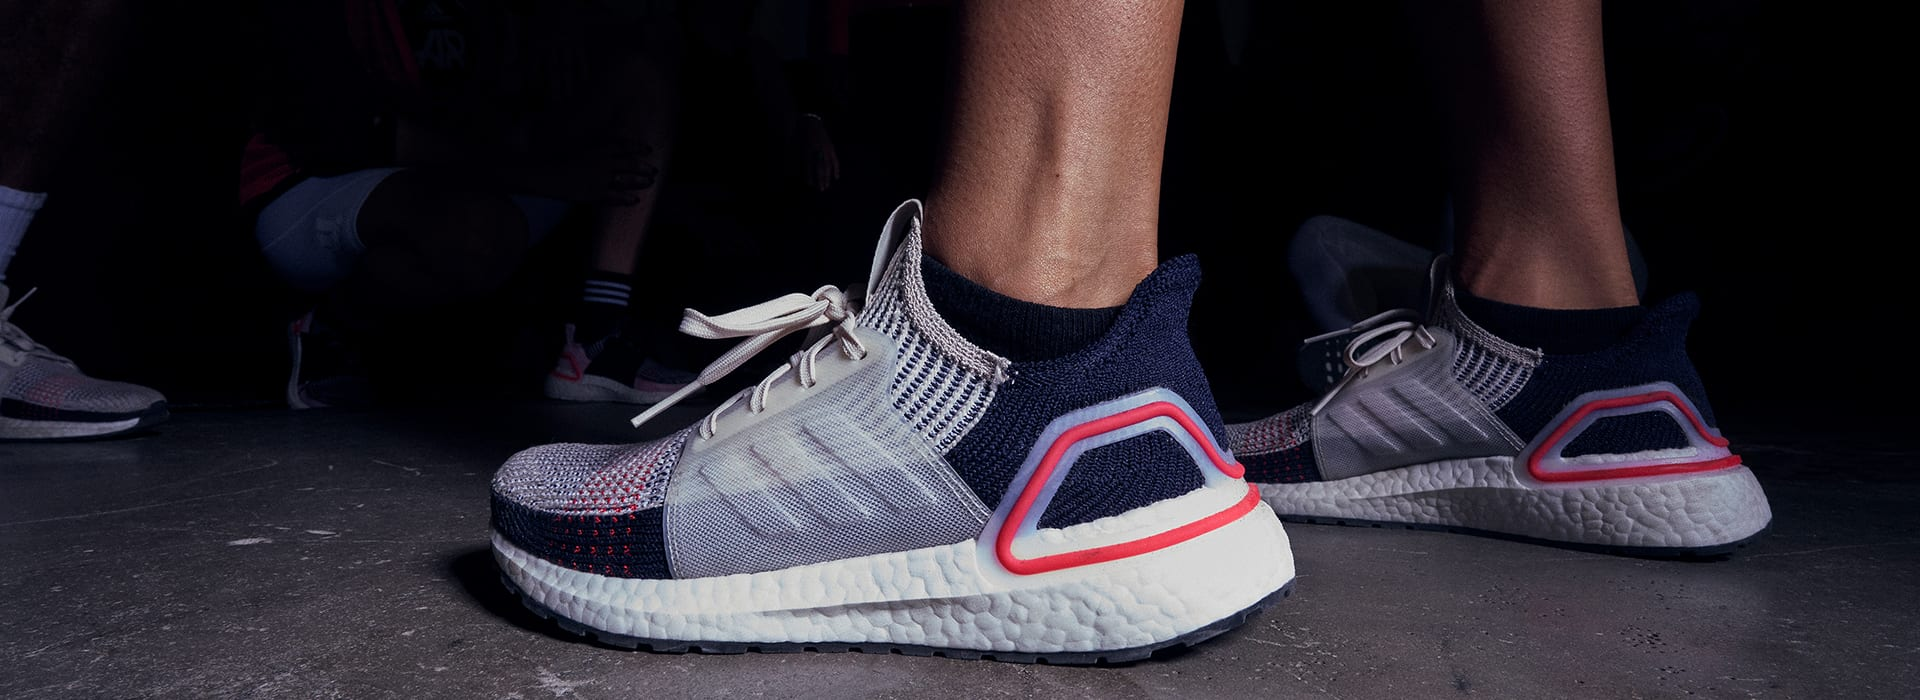 adidas boost arch support